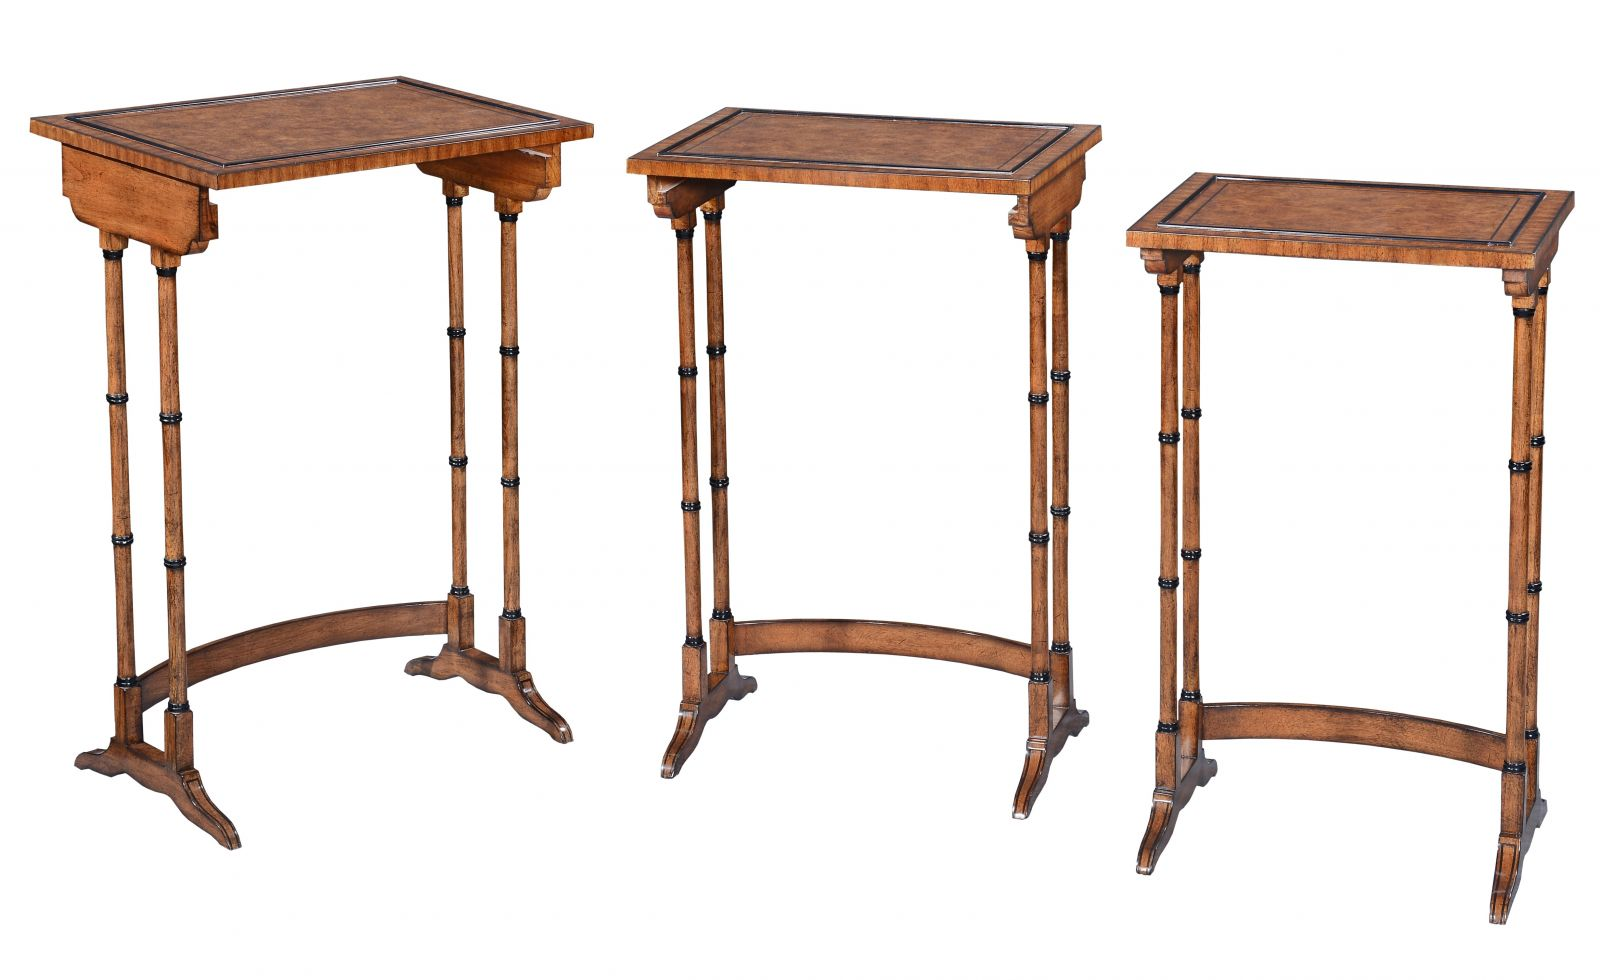 Antique style Nest of three tables - Burr oak